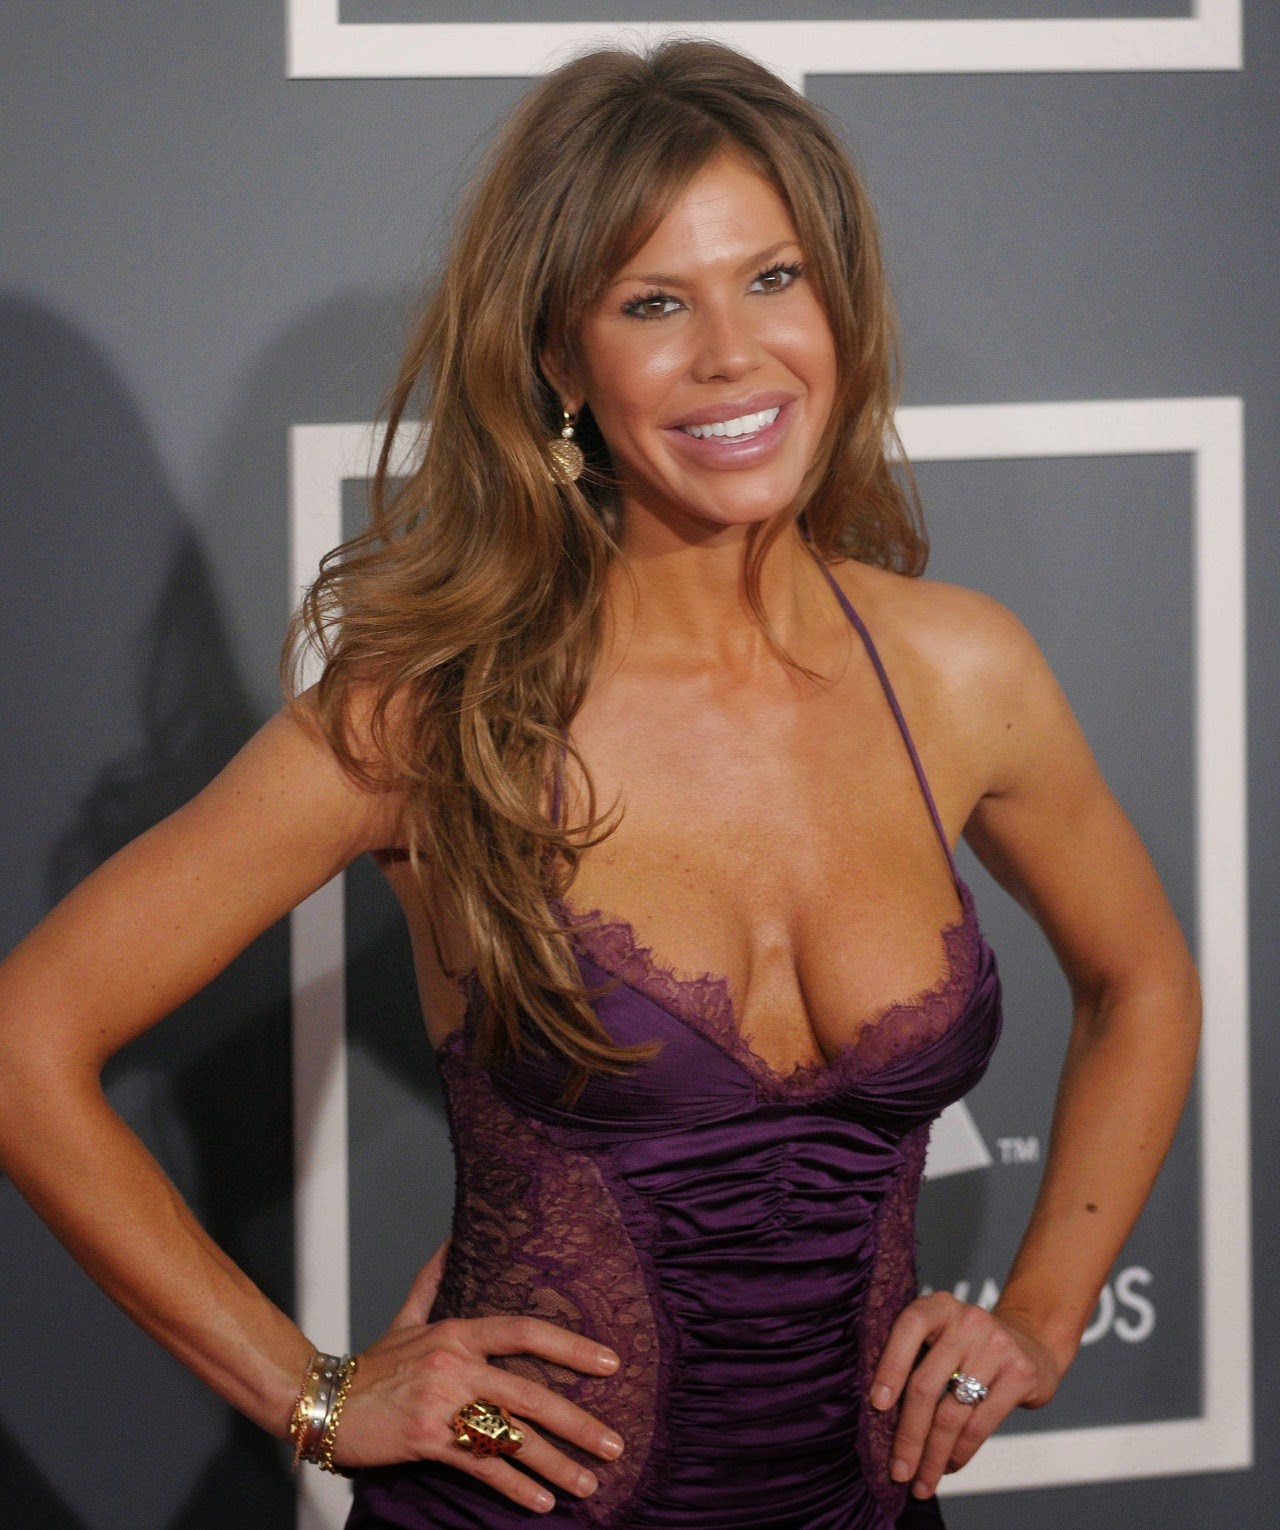 photo Nikki Cox Leaked and Fappening